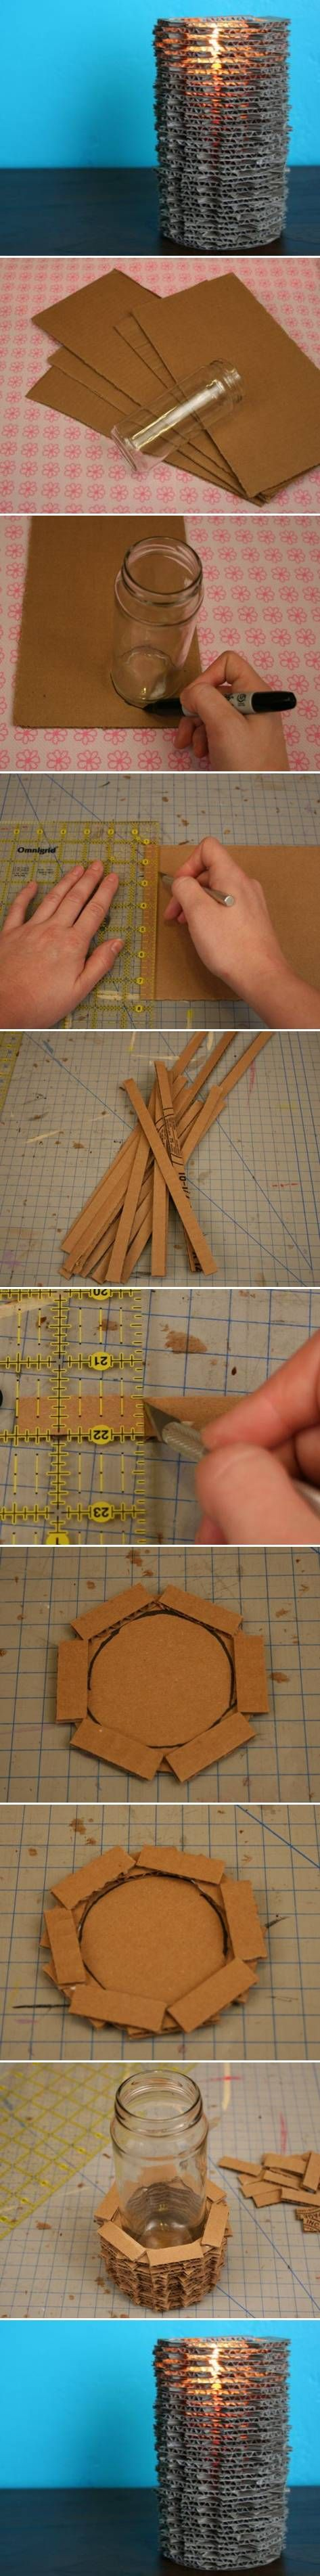 17 meilleures images propos de bricolage carton sur pinterest arbre en carton artisanat en. Black Bedroom Furniture Sets. Home Design Ideas